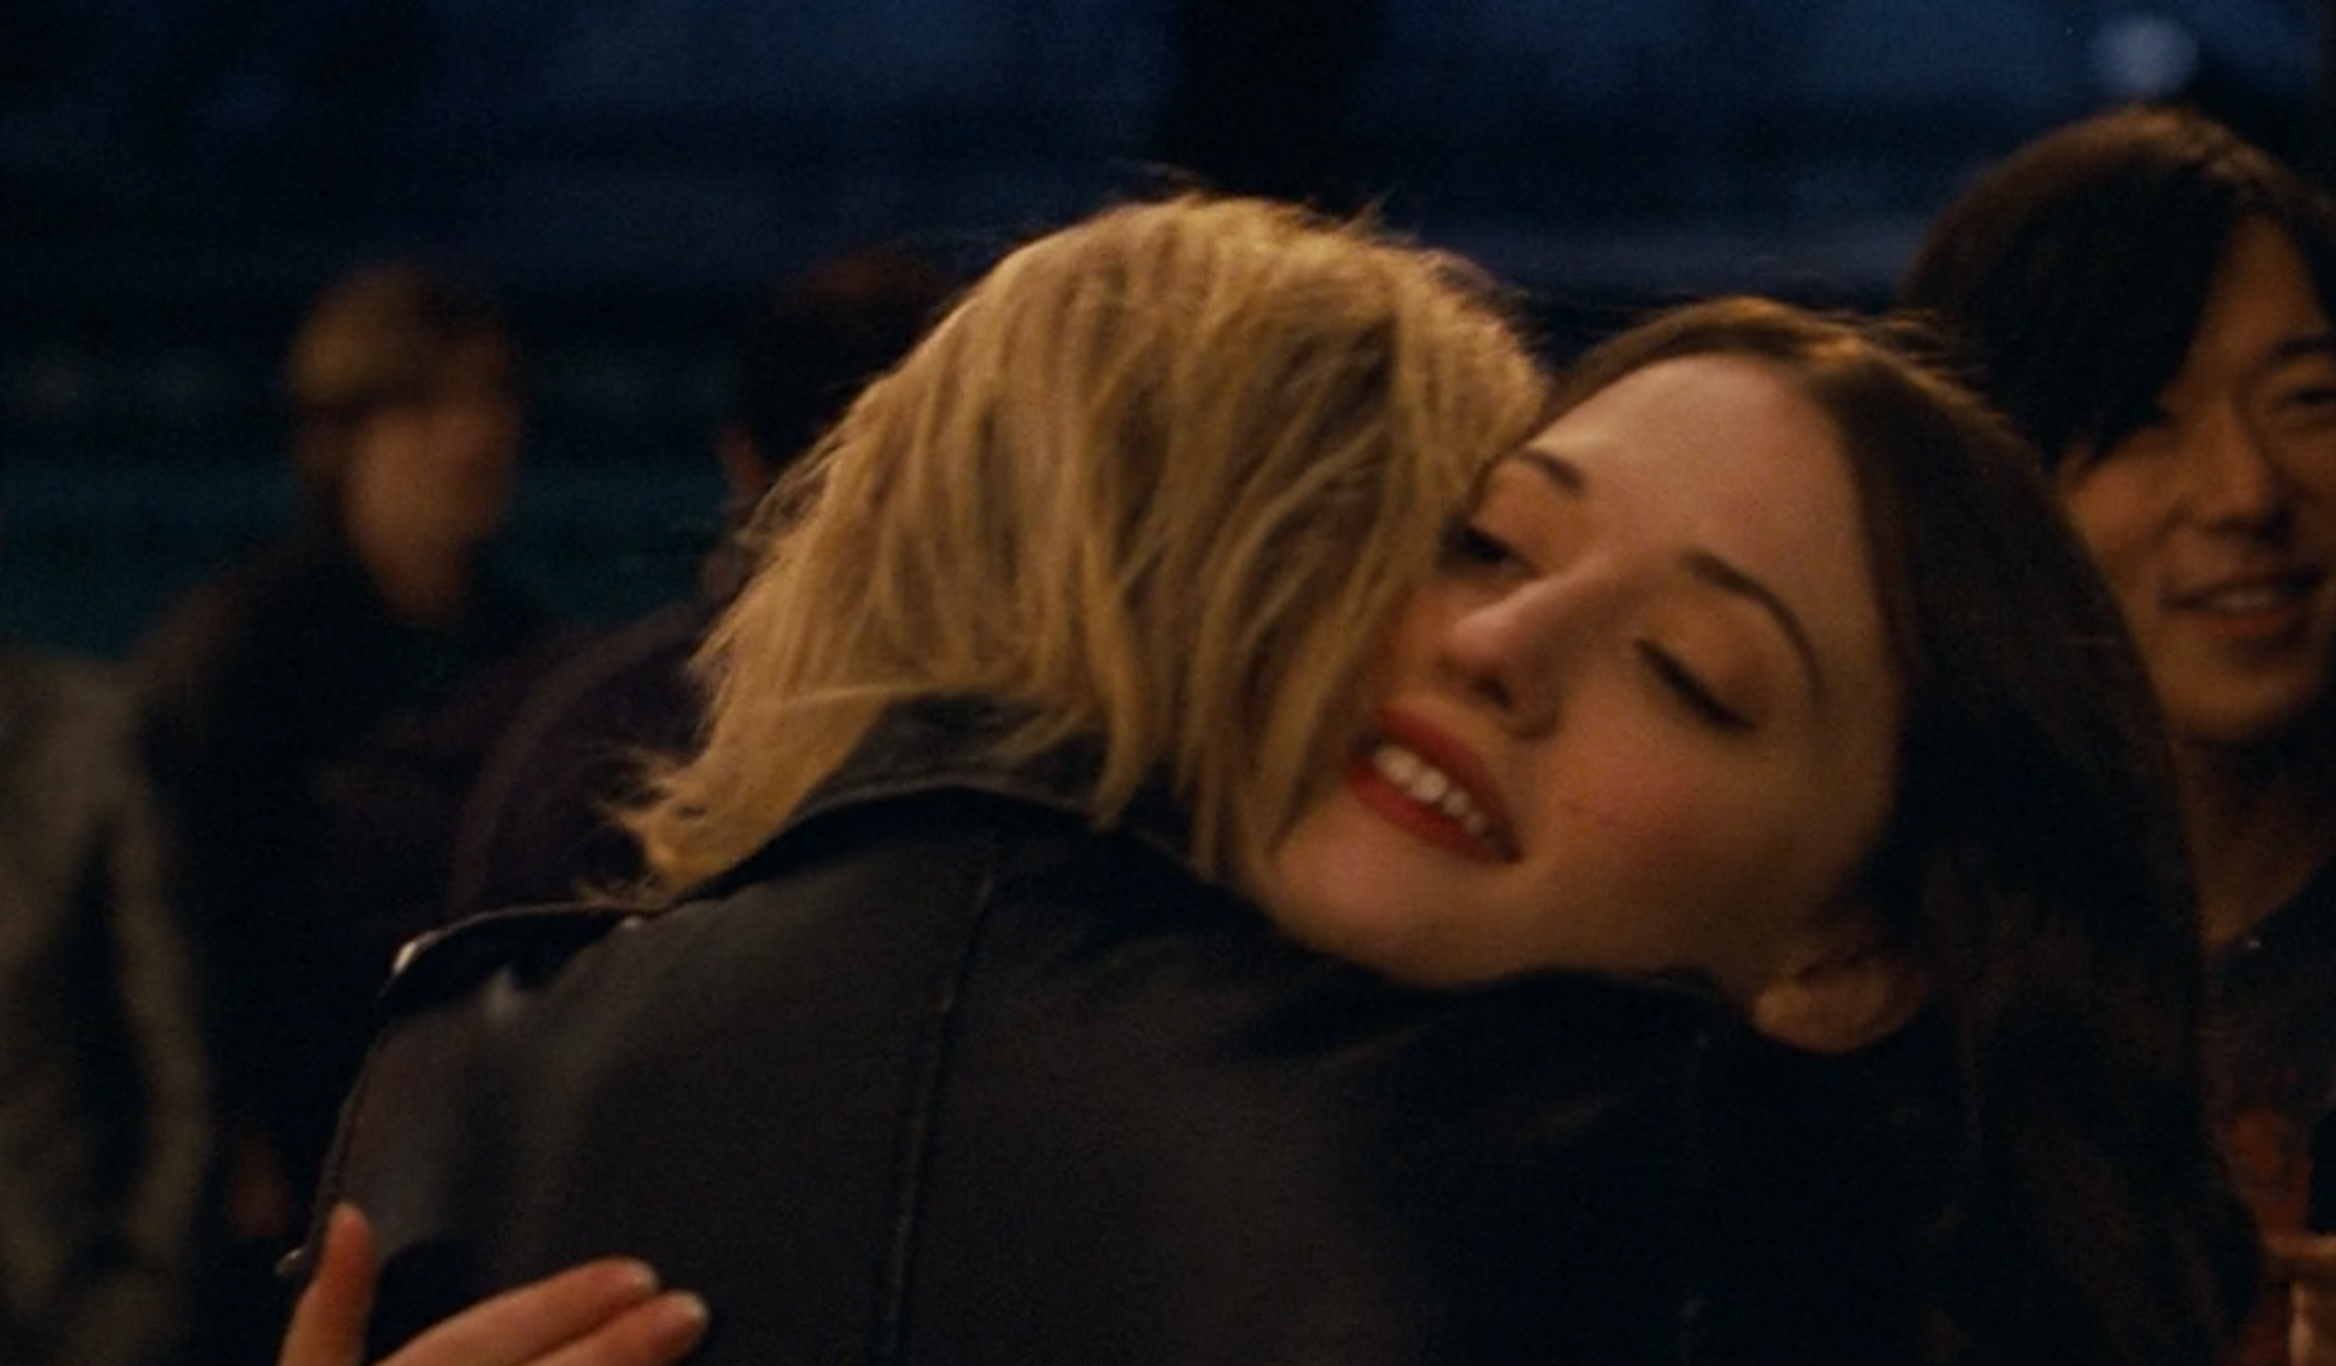 Ari Graynor and Kat Dennings hugging